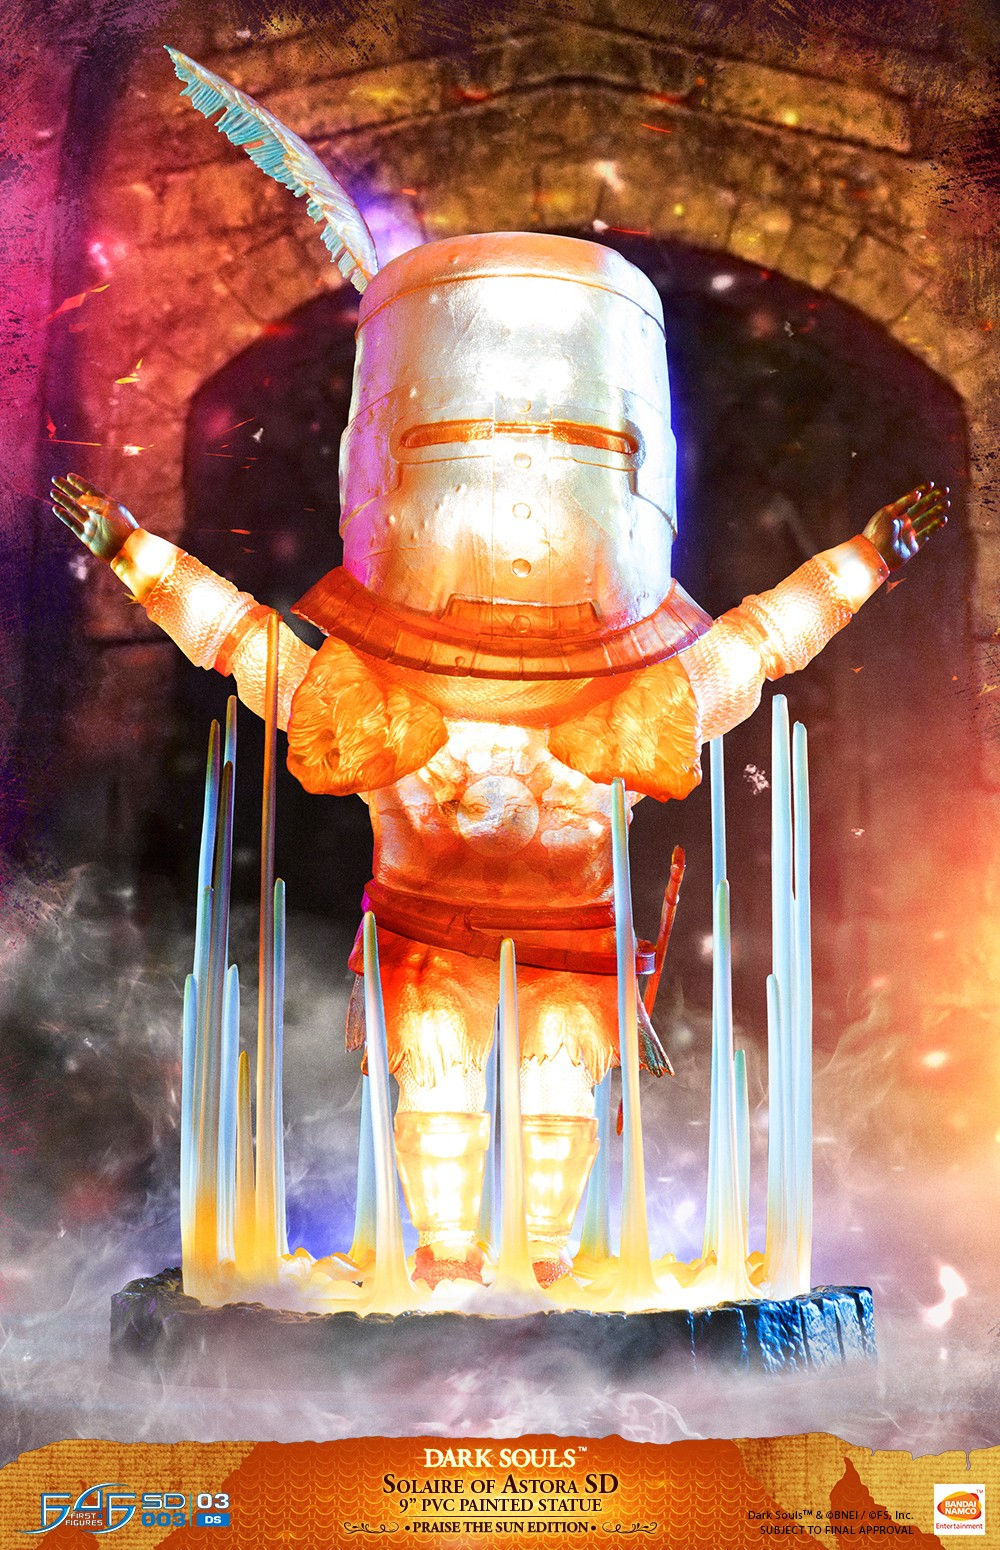 Solaire of Astora SD Praise the Sun Edition